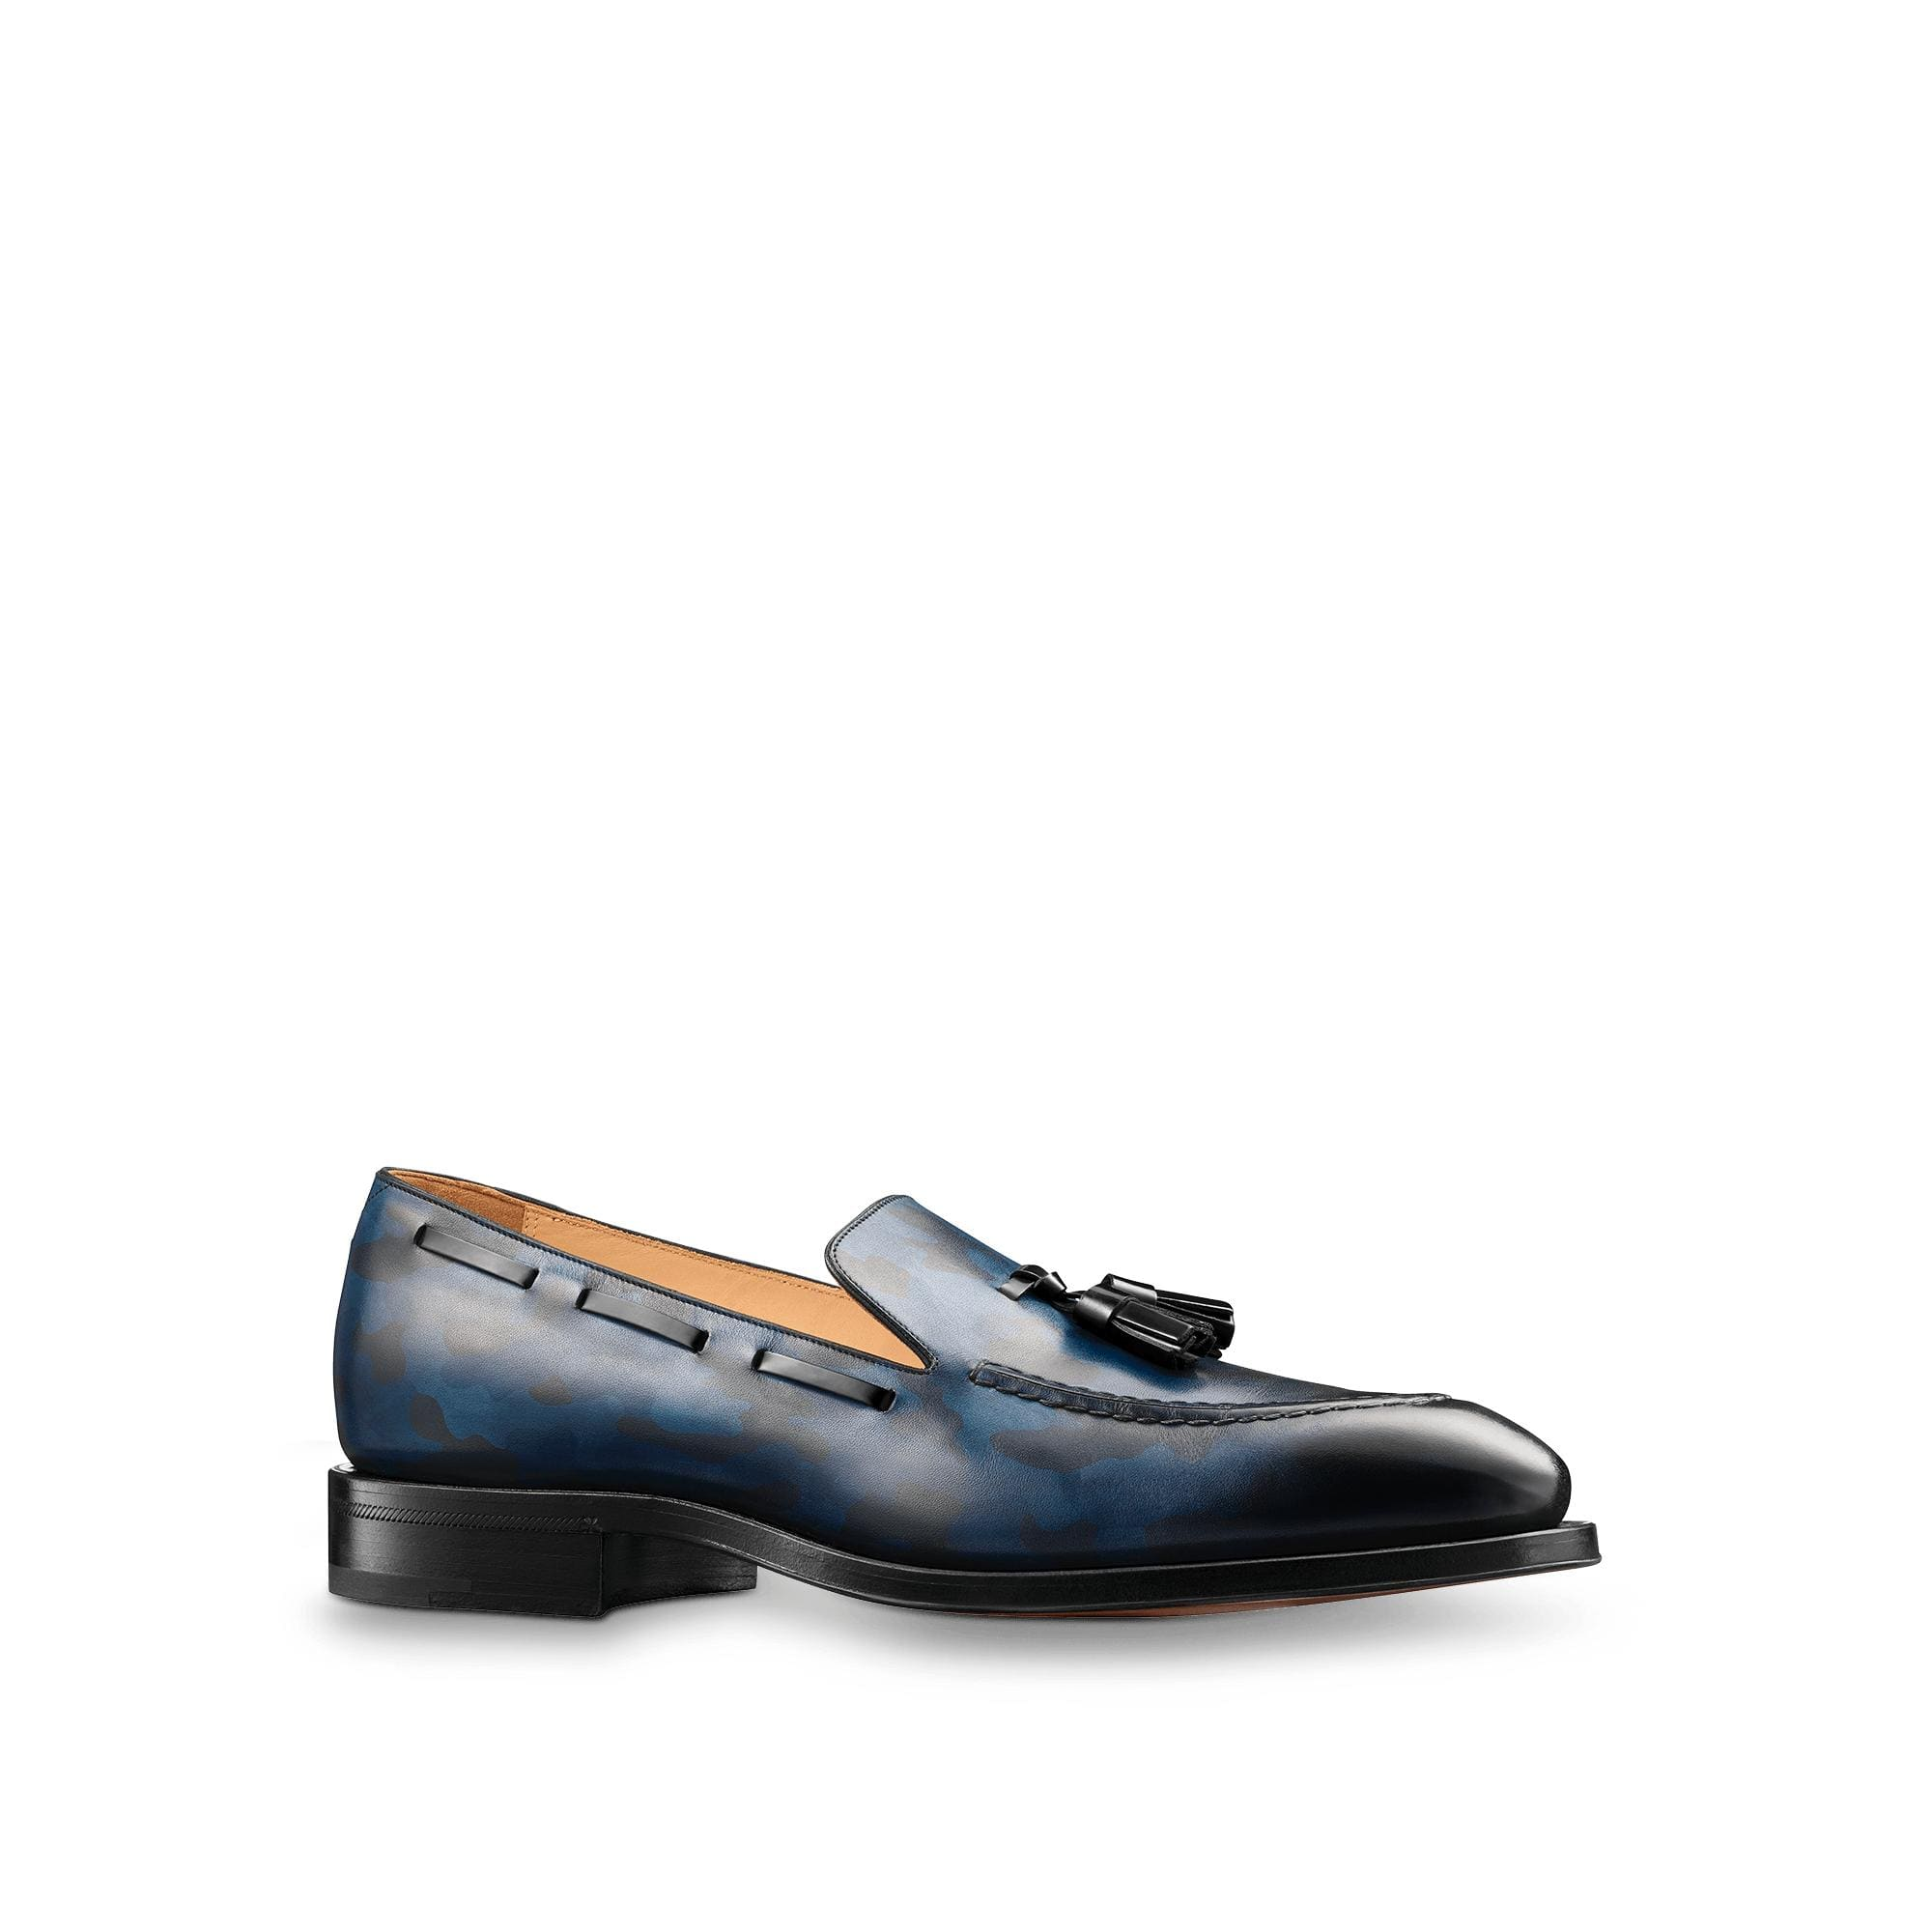 유럽직배송 루이비통 LOUIS VUITTON Varenne Loafer 1A3ORG